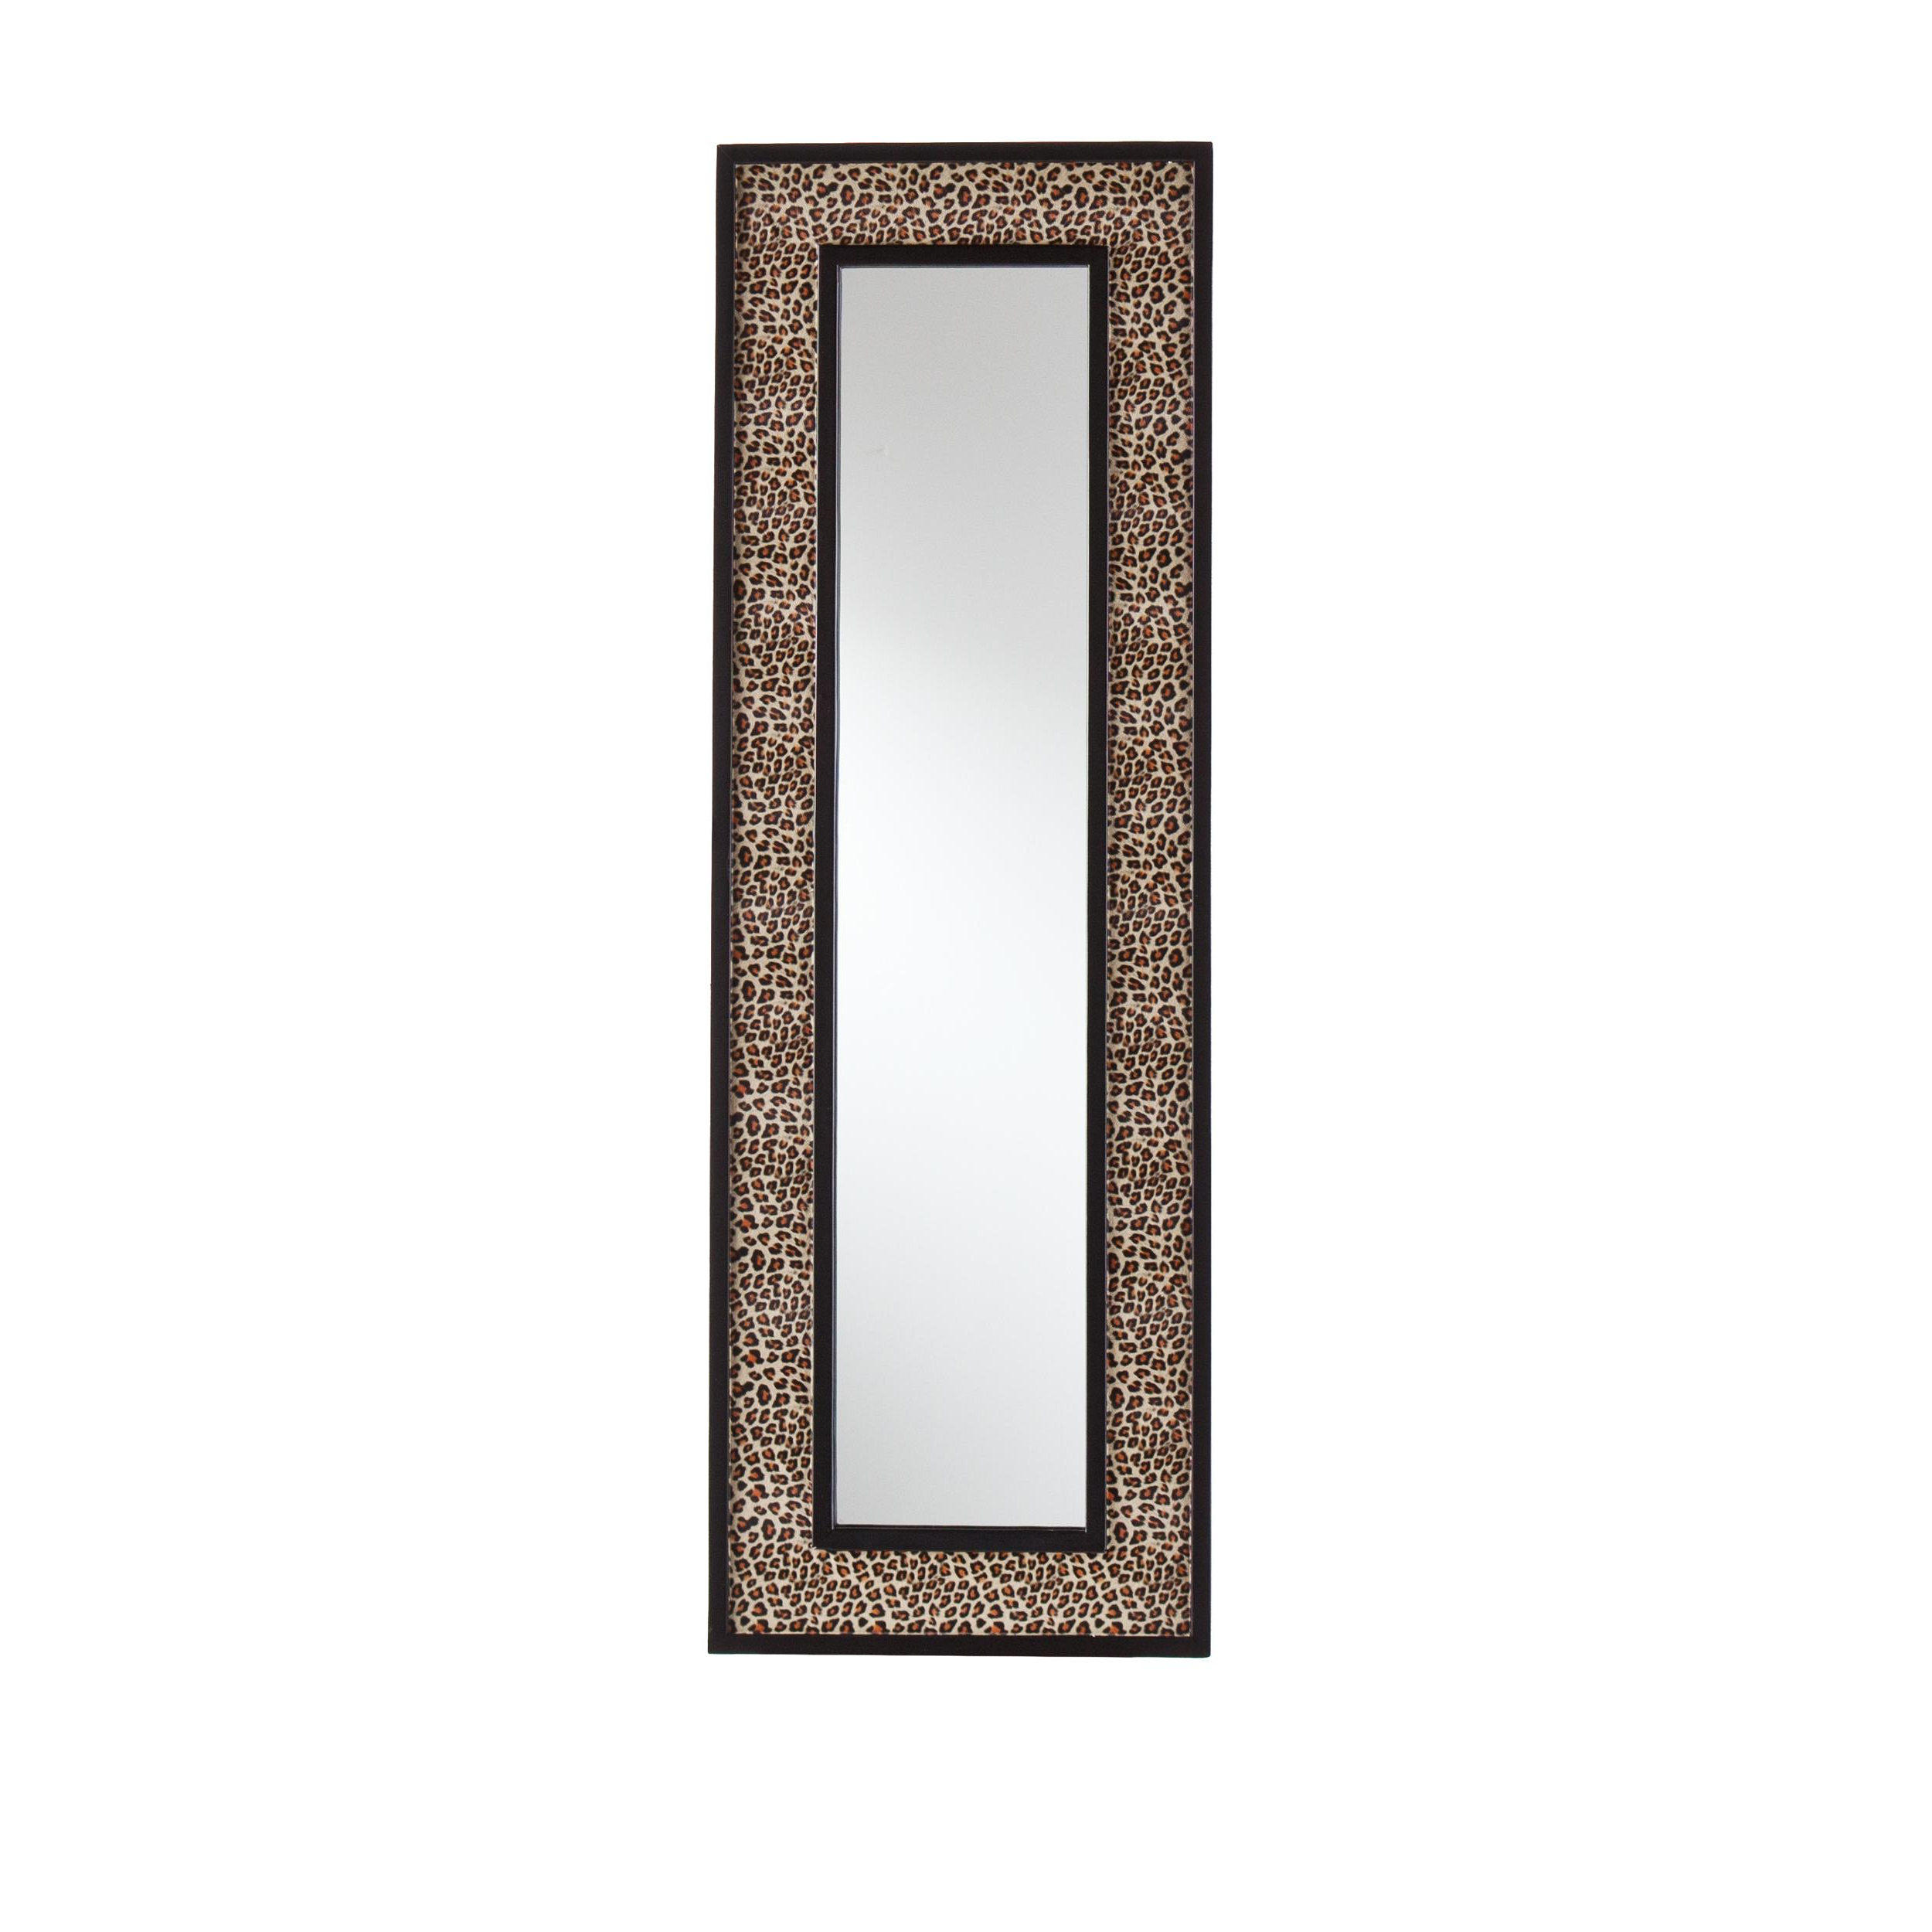 Leopard Wall Mirrors Within Widely Used Amazon: Sei Decorative Wall Art Mirror – Leopard Print – Hangs (View 12 of 20)